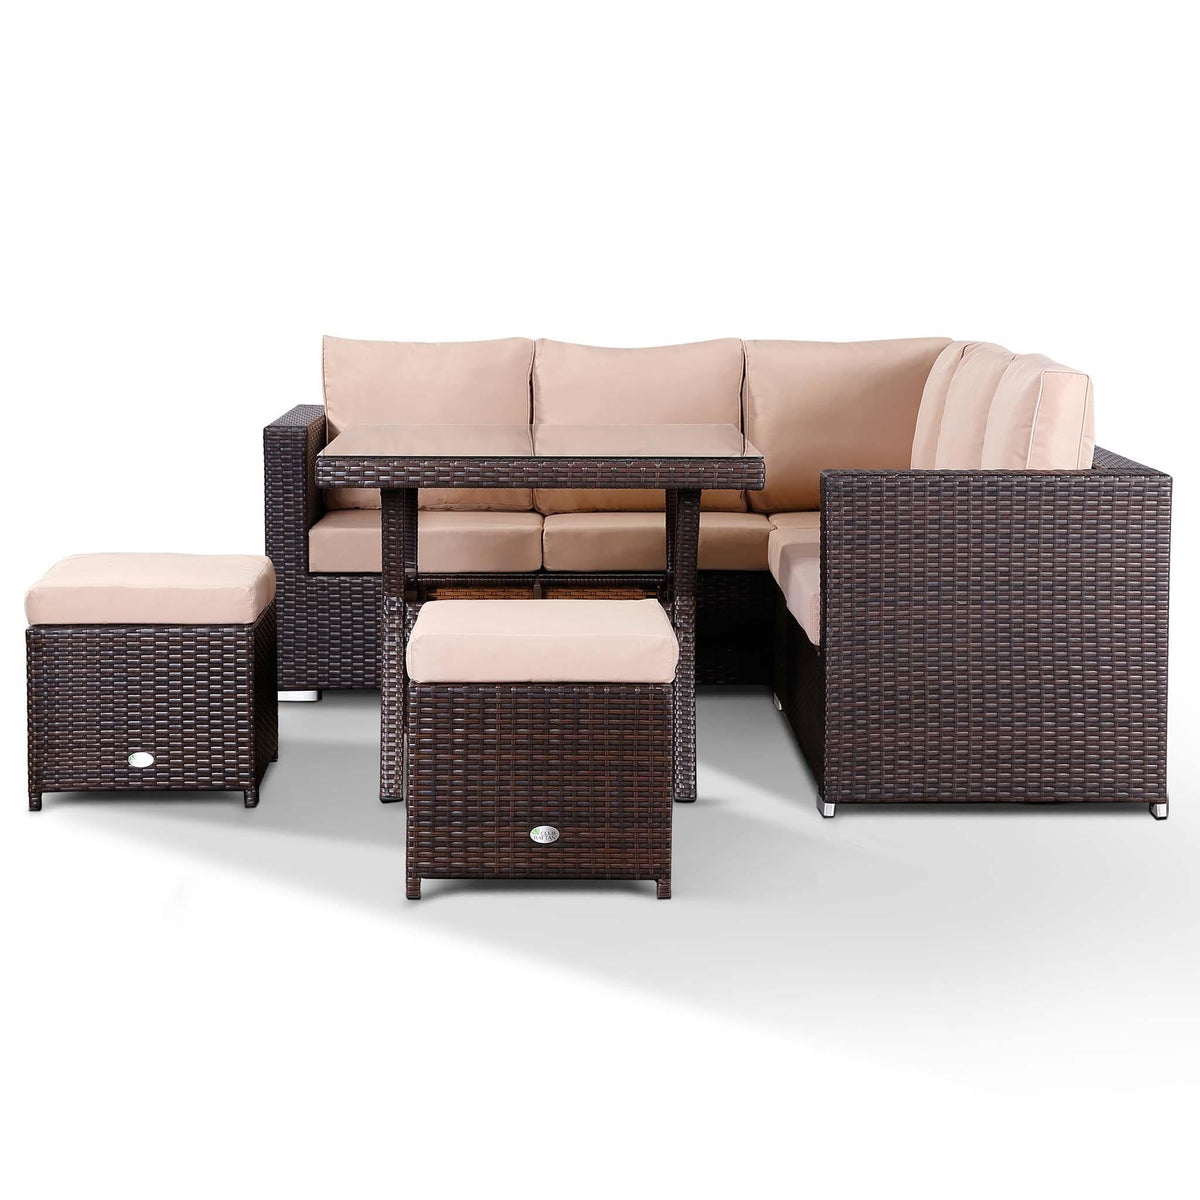 Lille Corner Sofa With Dining Table And 2 Stools In Small